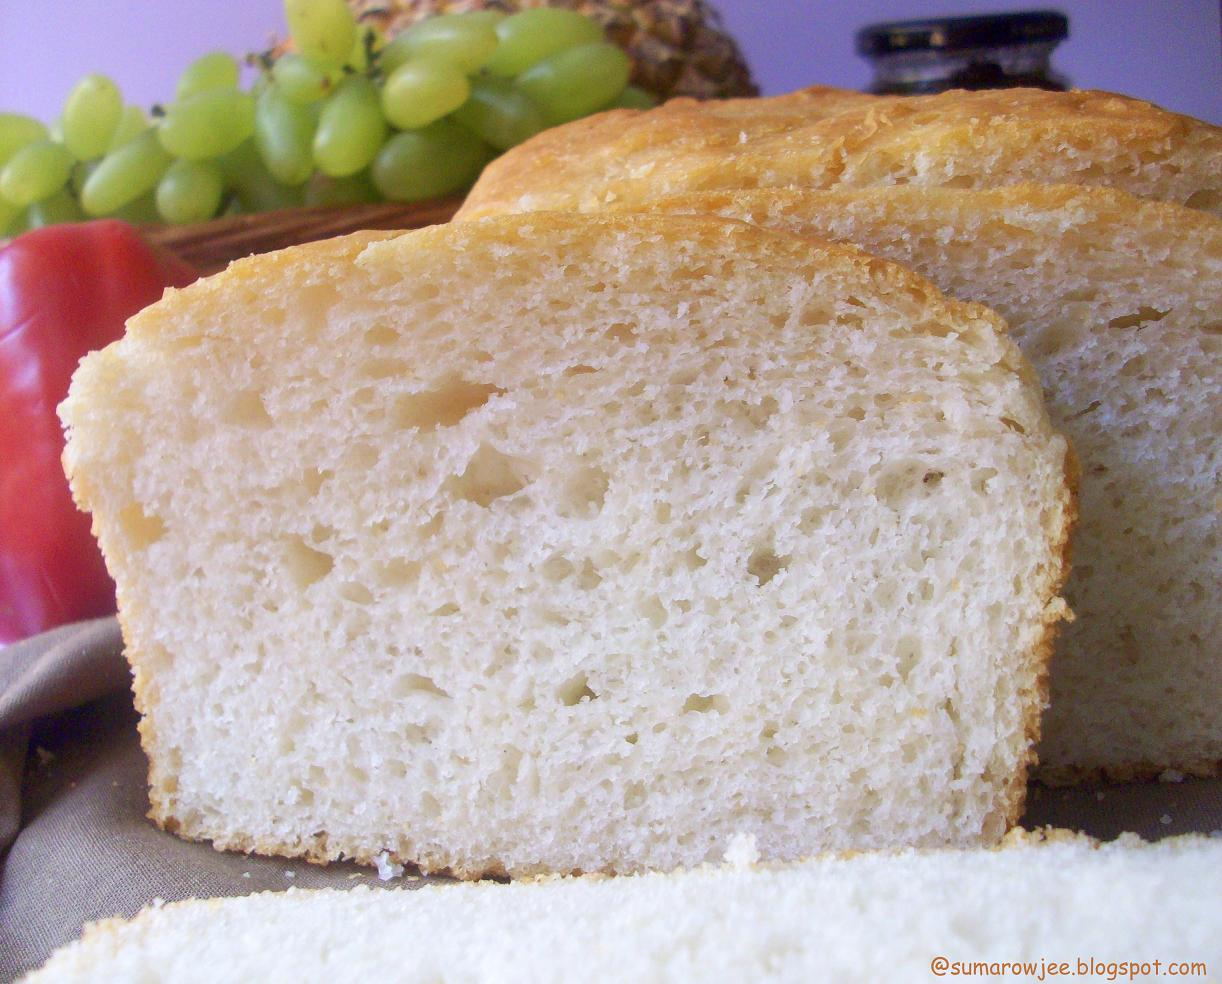 Cakes And More!: Batter White Bread - One Easy Loaf!